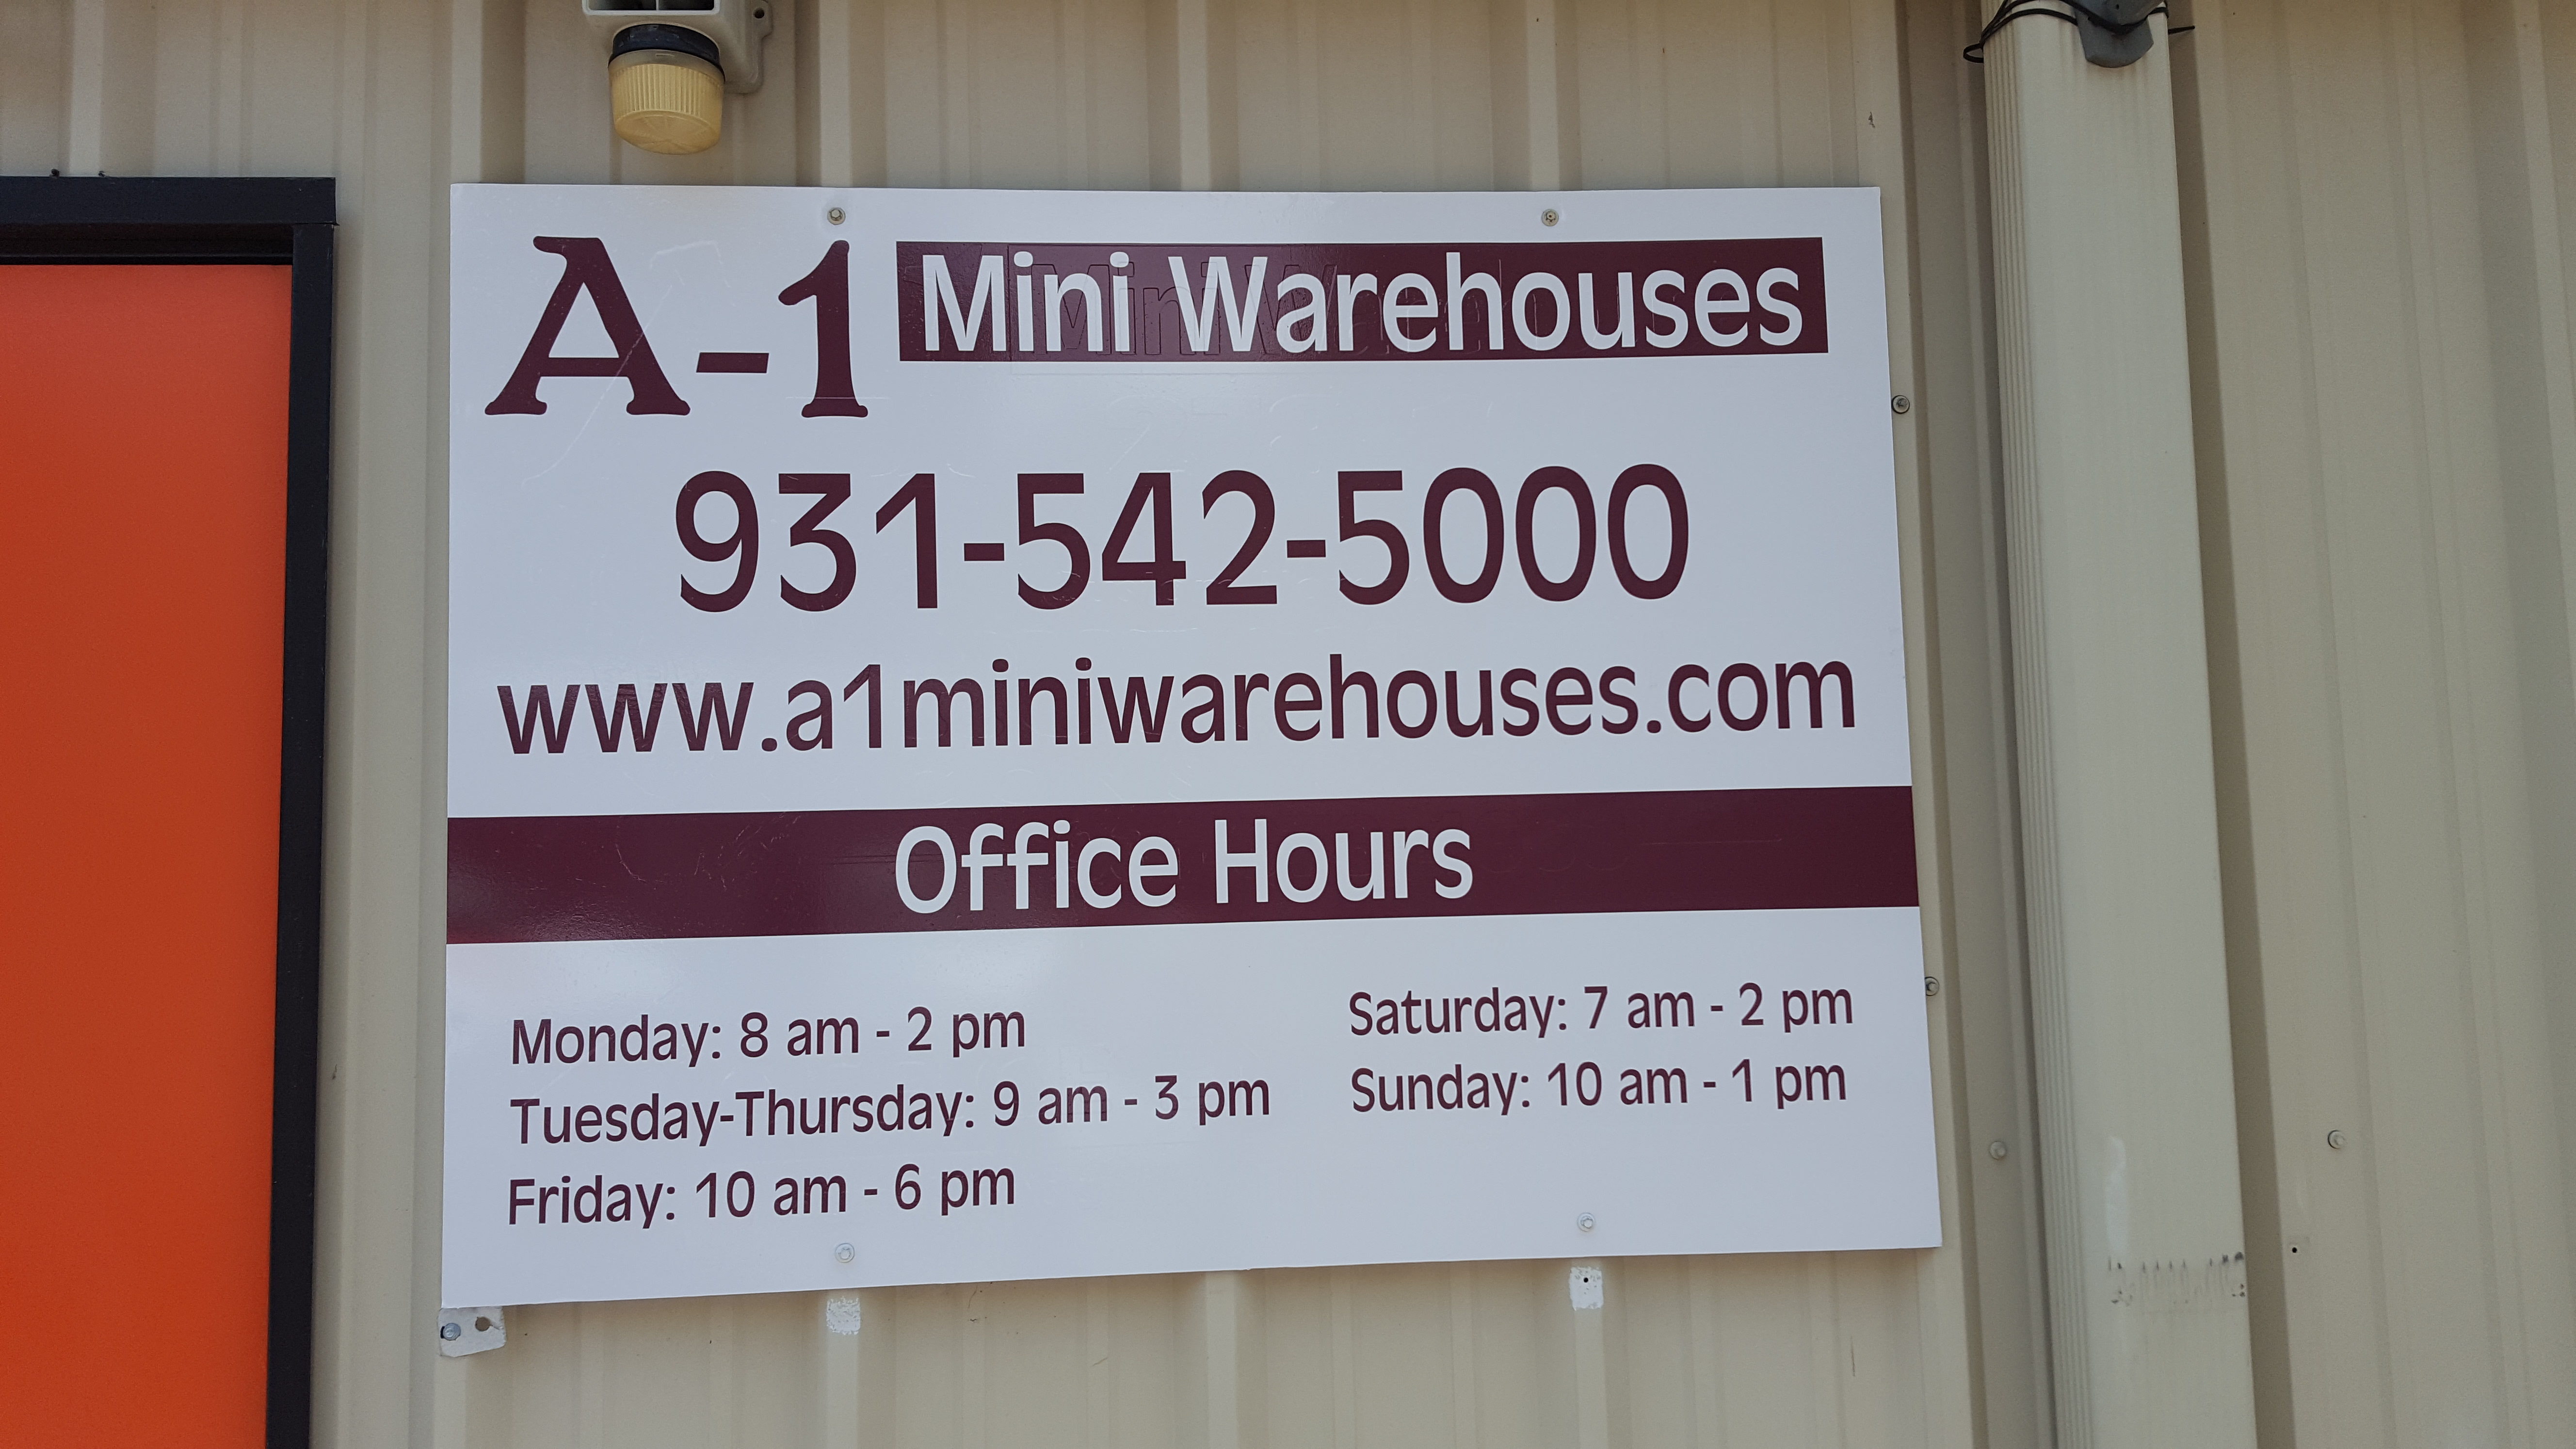 a1miniwarehouses.com Photo